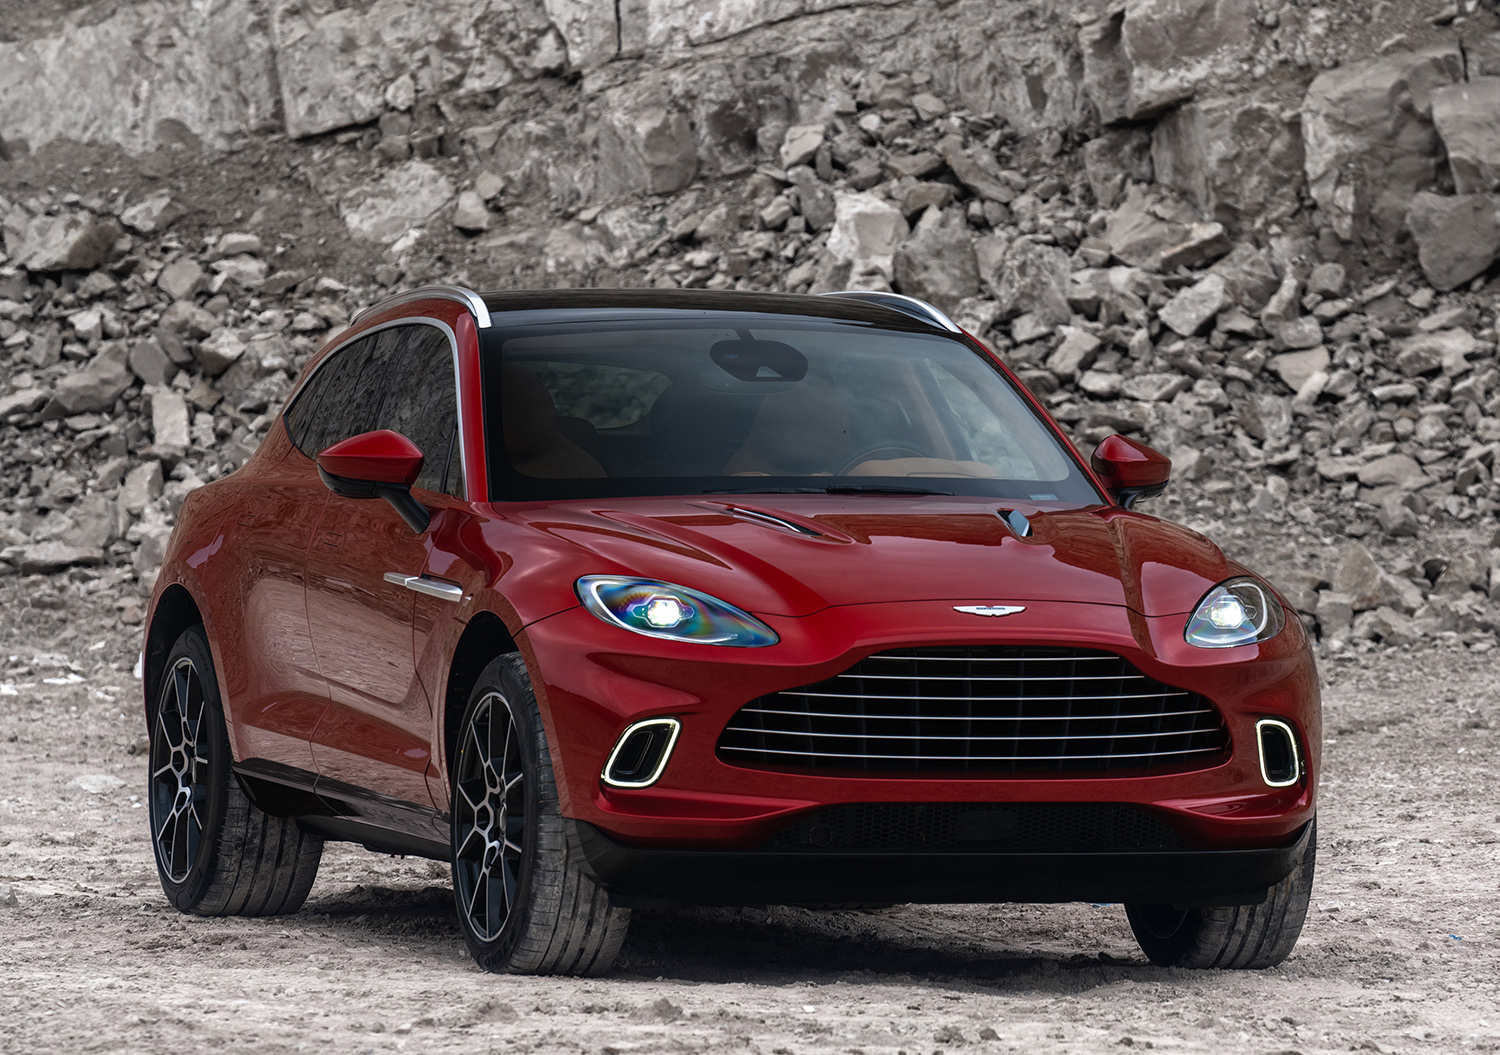 Aston Martin Unleashes 2020 Dbx For The Showroom